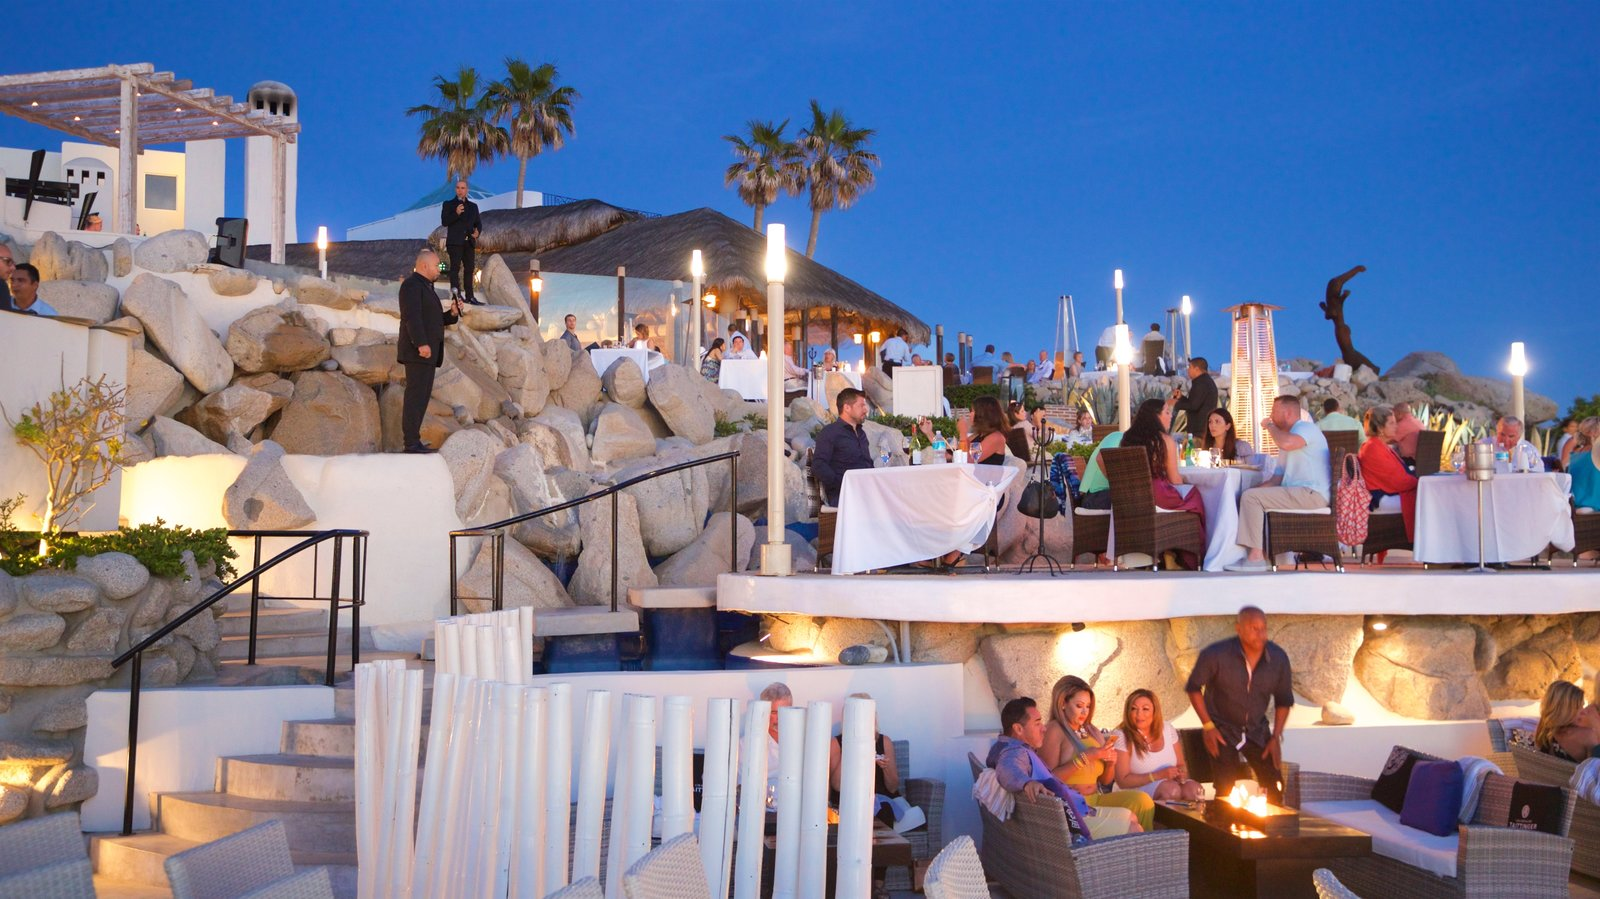 San Jose del Cabo featuring outdoor eating, dining out and night scenes